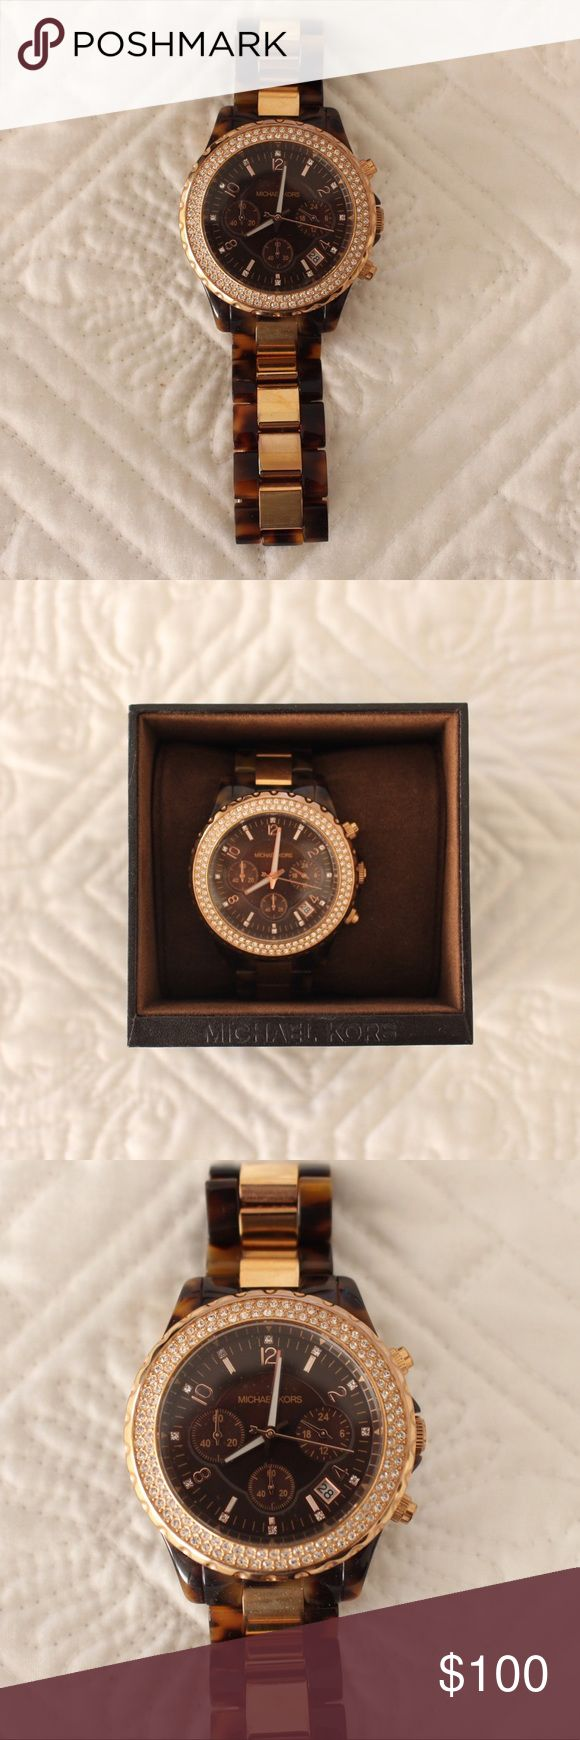 Michael Kors Rose Gold and Tortoise Shell Watch Beautiful Michael Kors Rose Gold and Tortoise Shell Watch with Swarovski Crystals. Rarely worn. Comes with box and instructions and extra link. MICHAEL Michael Kors Accessories Watches